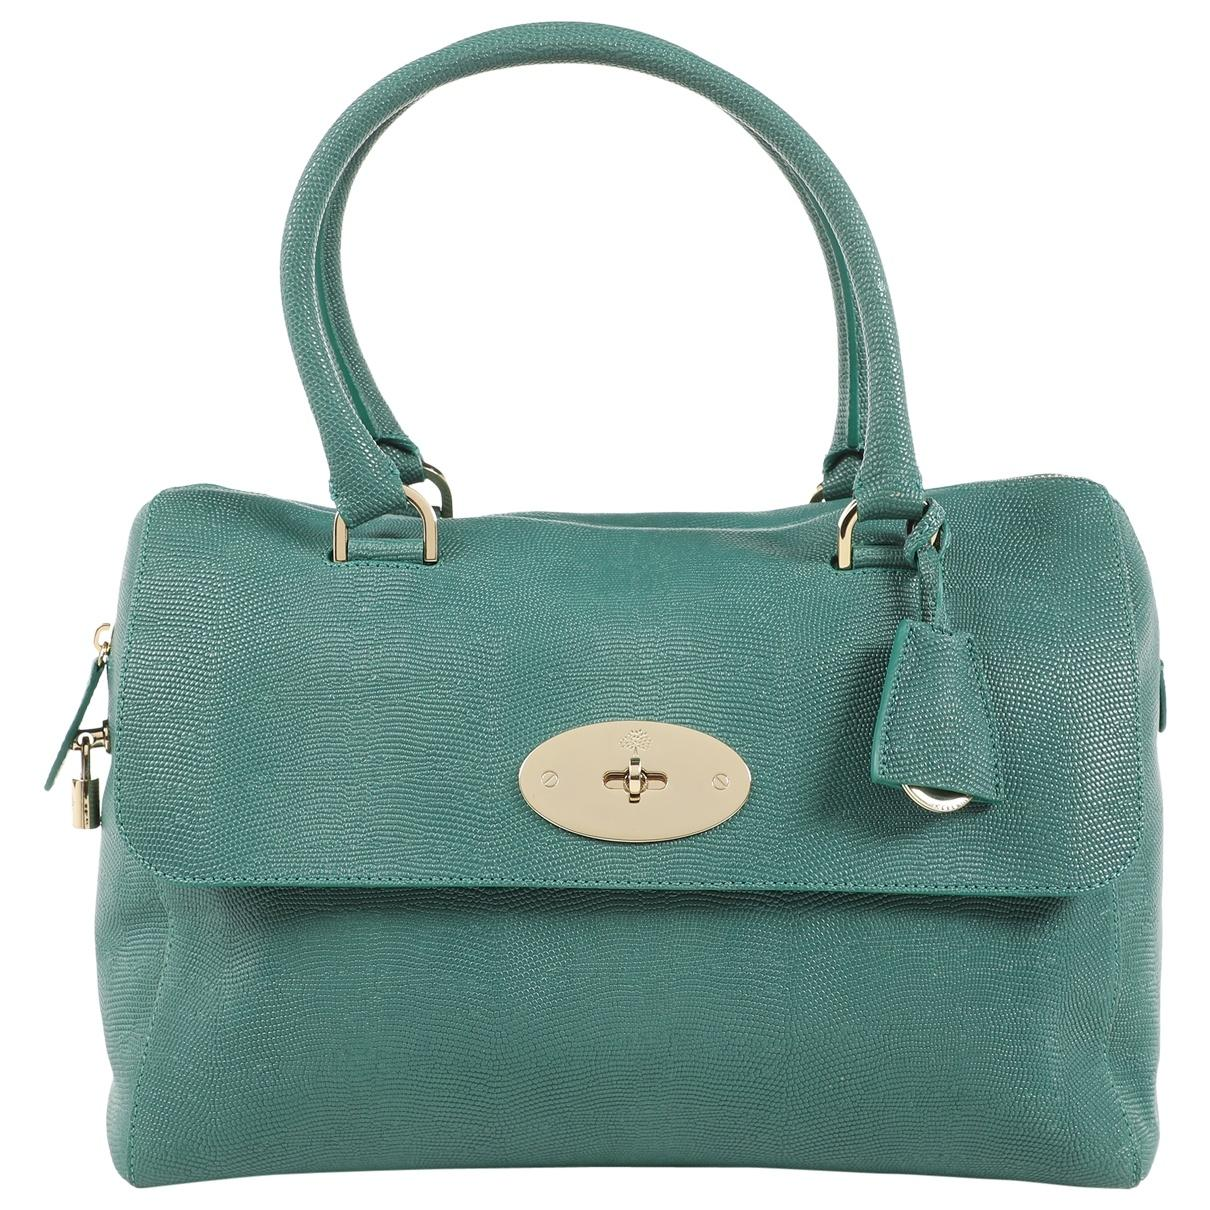 30b05756987a Mulberry. Women s Pre-owned Green Leather Handbags. £390 From Vestiaire  Collective